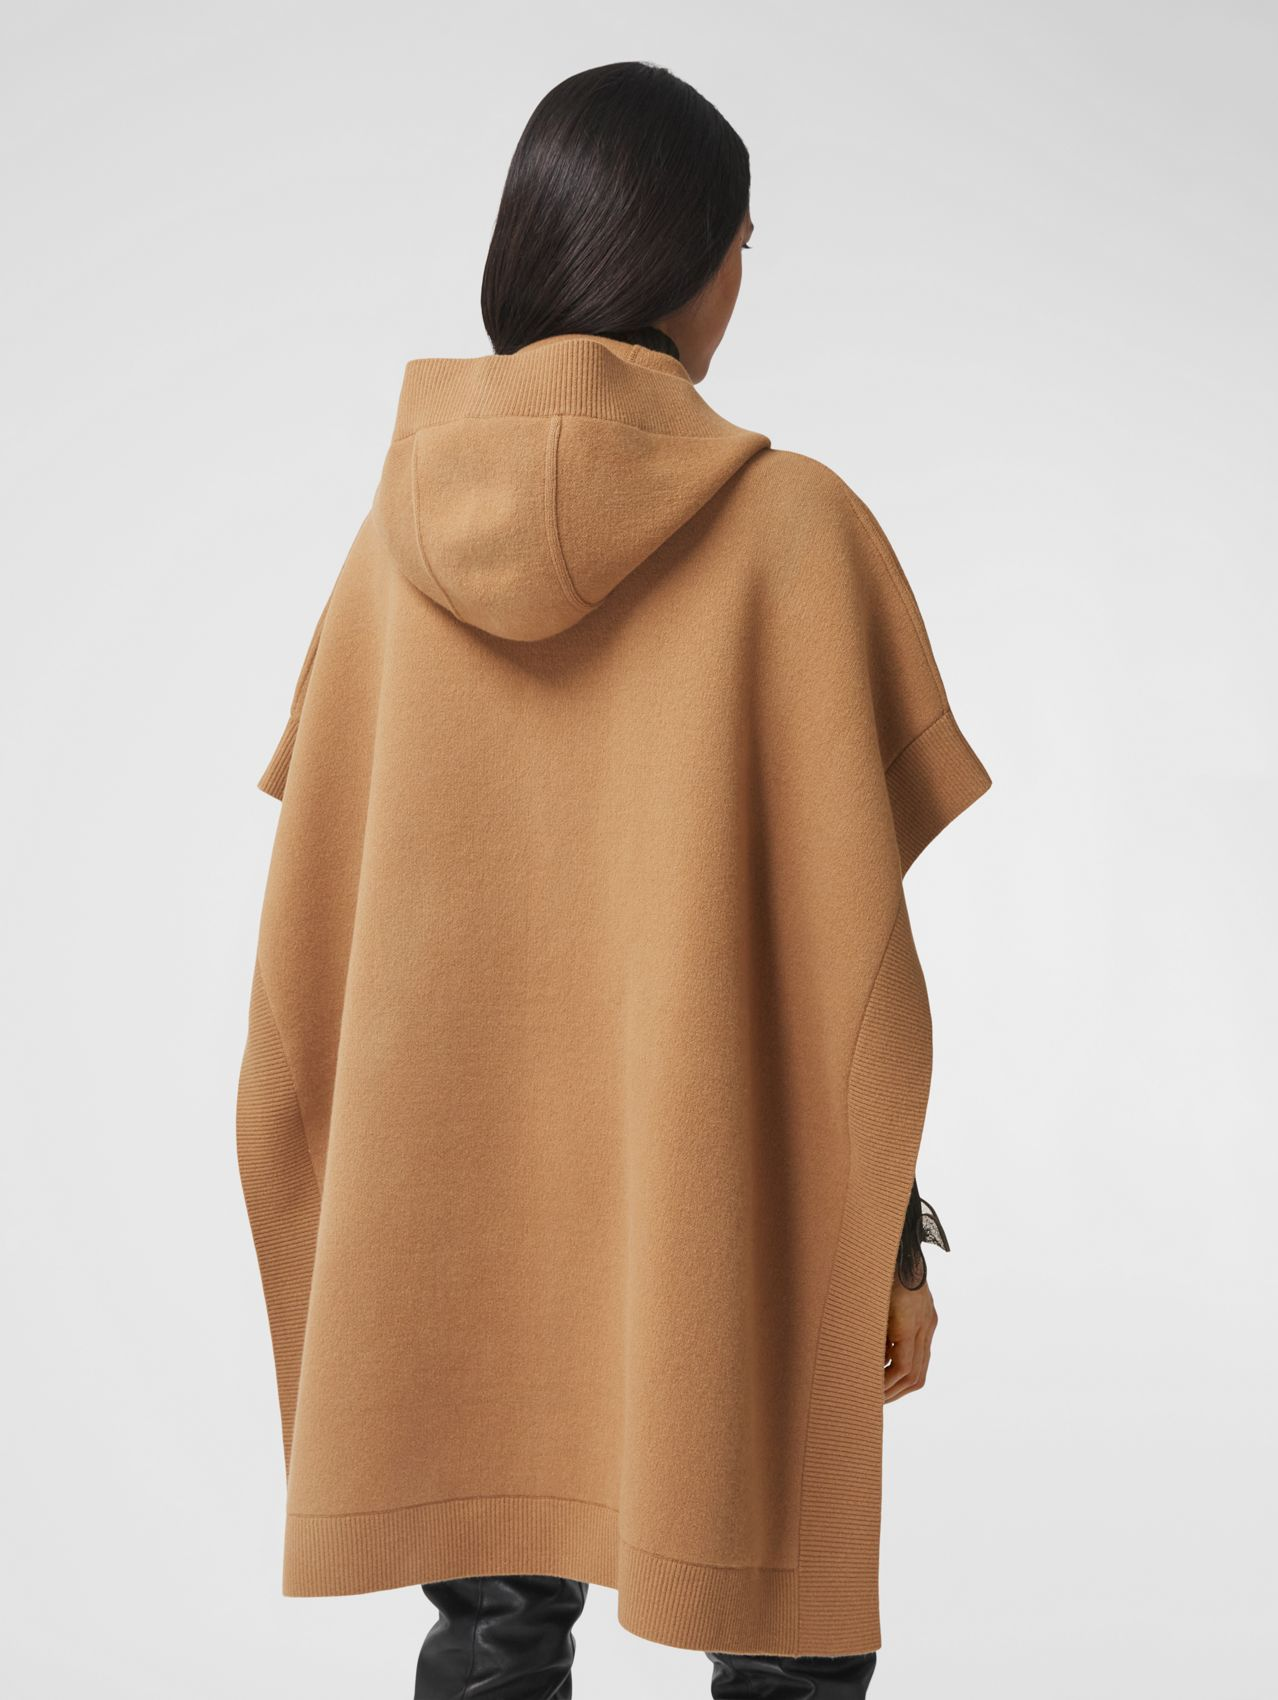 Monogram Motif Cashmere Blend Hooded Cape in Camel